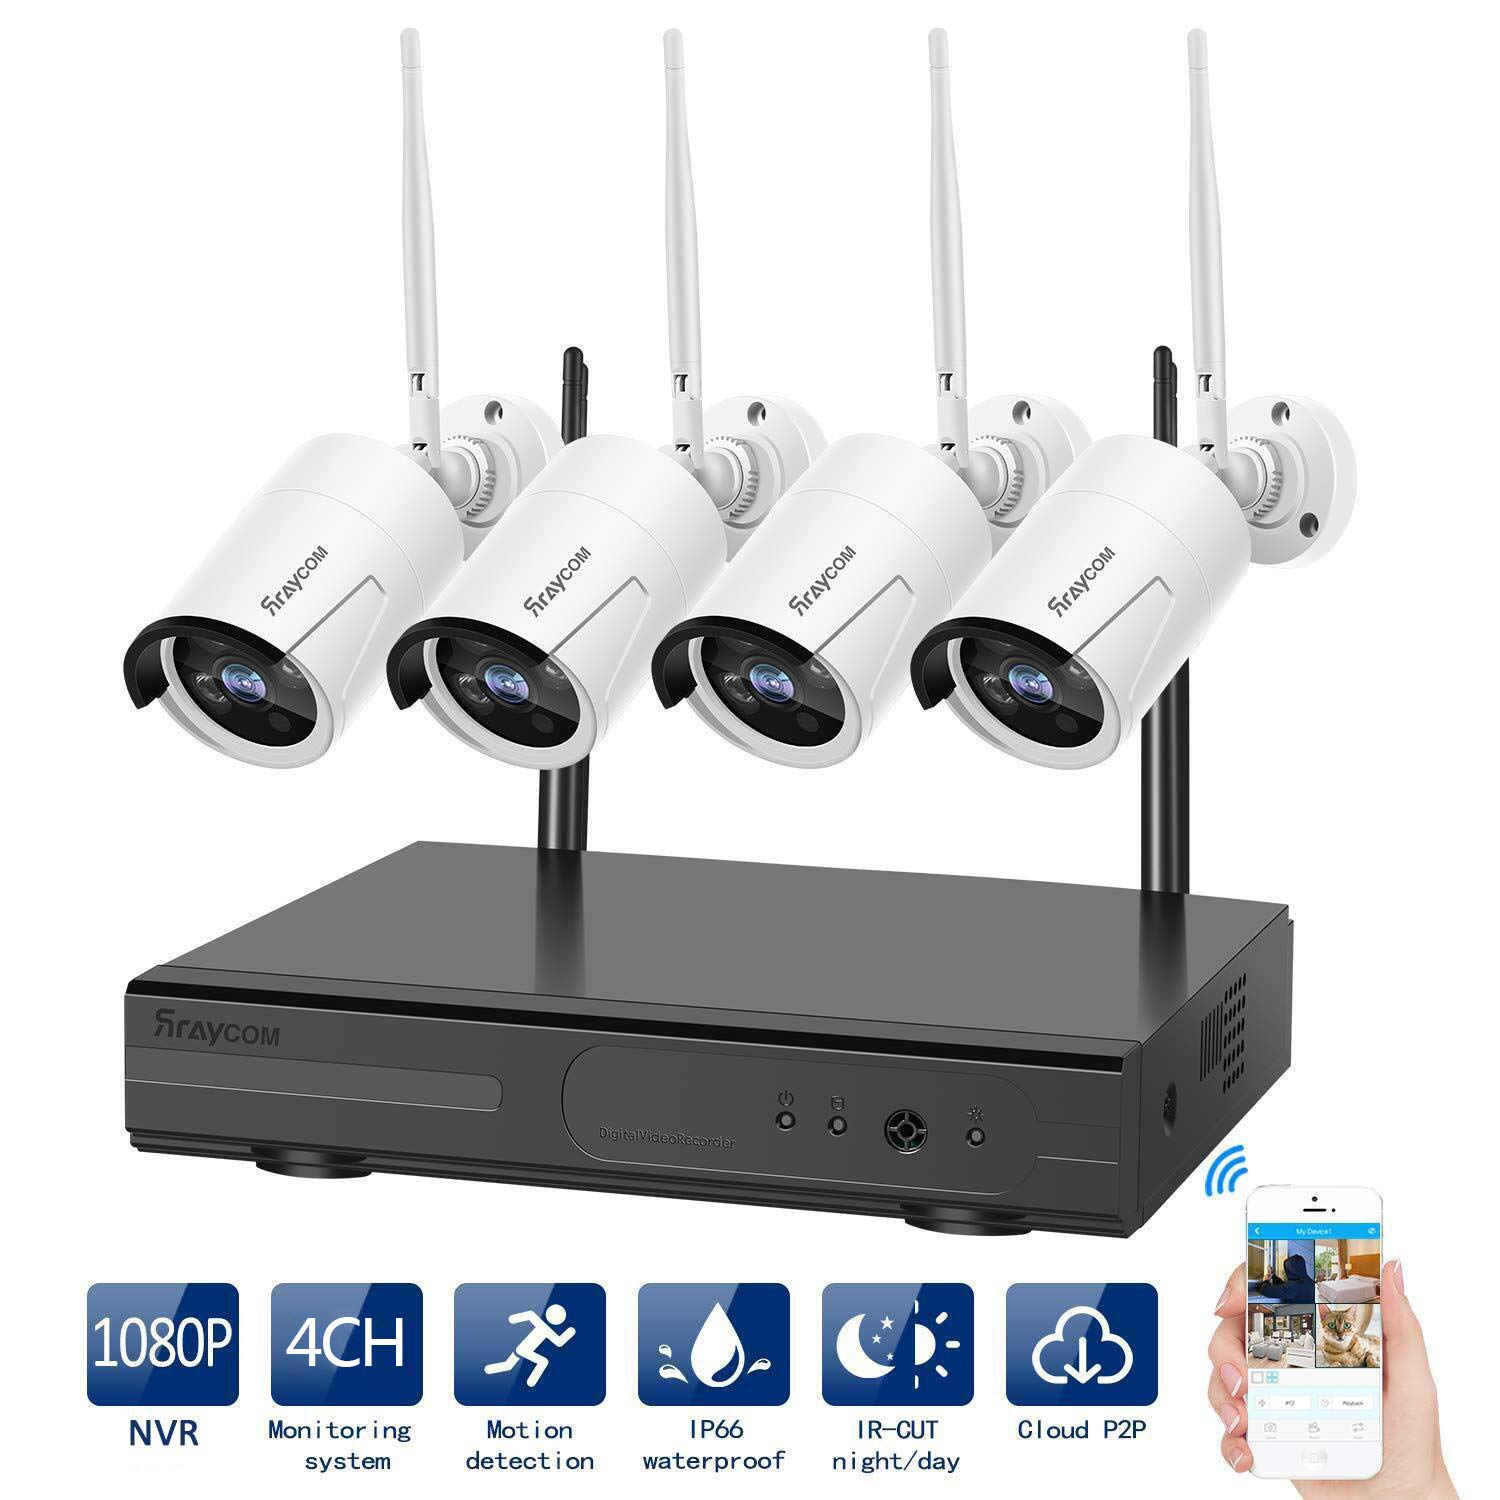 Rraycom Security Camera System Wireless,4CH 1080P NVR with 4Pcs 720P 1.0MP Outdoor/Indoor WiFi Surveillance Wireless Weatherproof IP Cameras,65ft Night Vision, App Remote View, P2P,Plug Play,No HDD by Rraycom